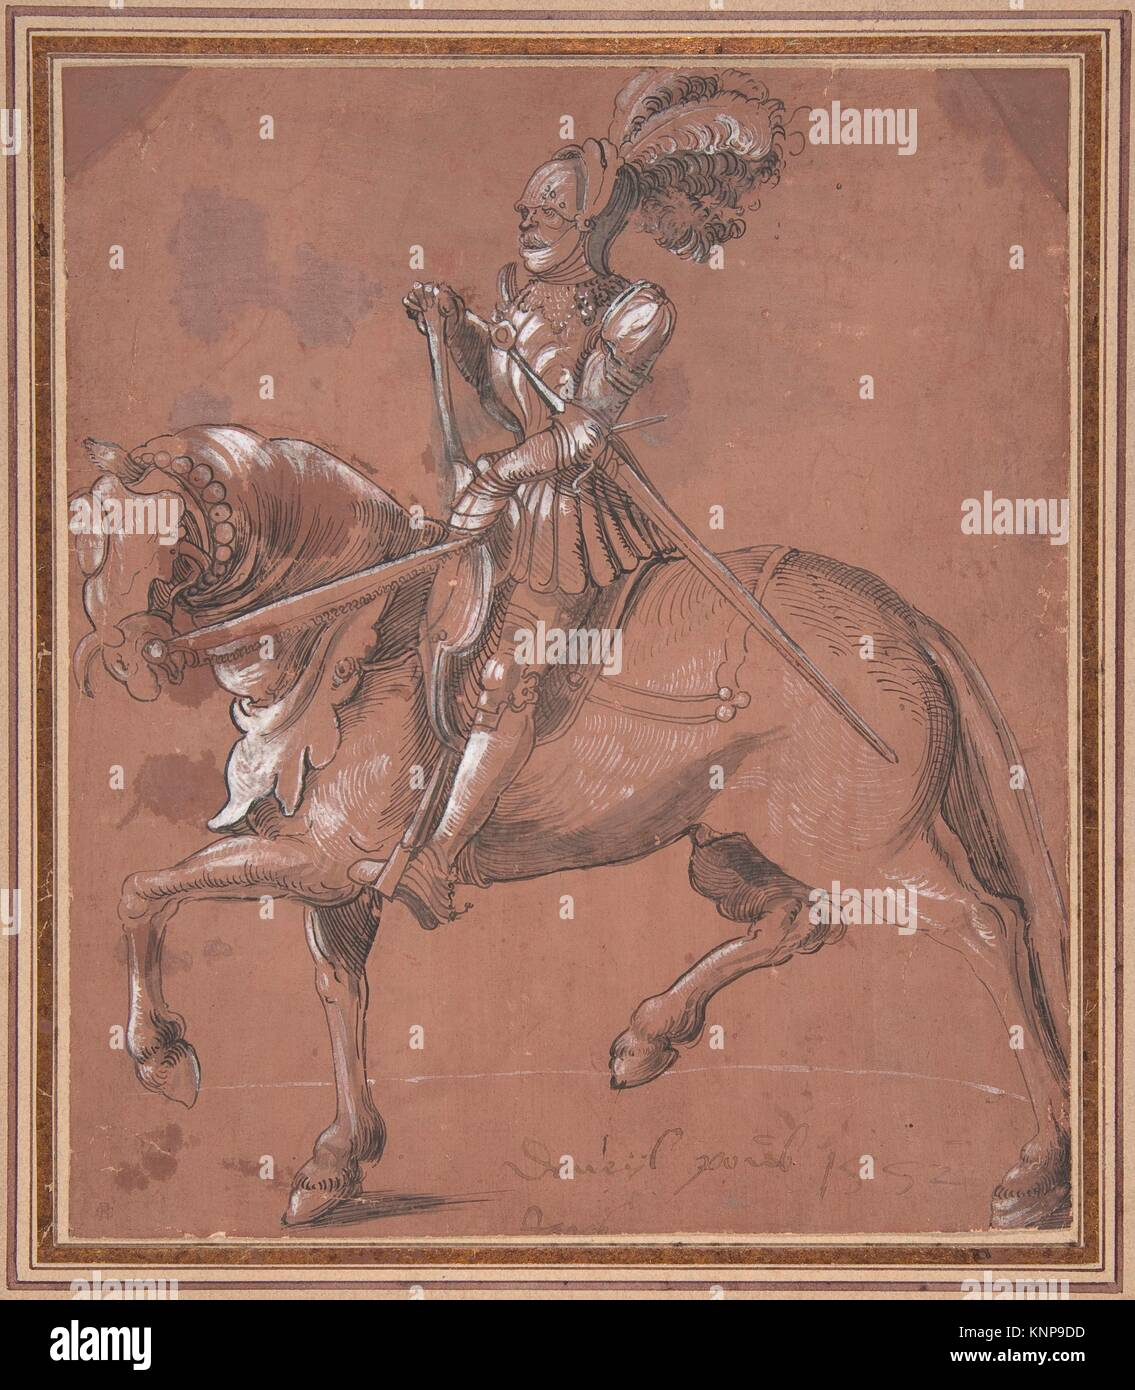 Knight on Horseback. Artist: Anonymous, German, 16th century; Date: ca. 1520; Medium: Pen and black ink and grey - Stock Image